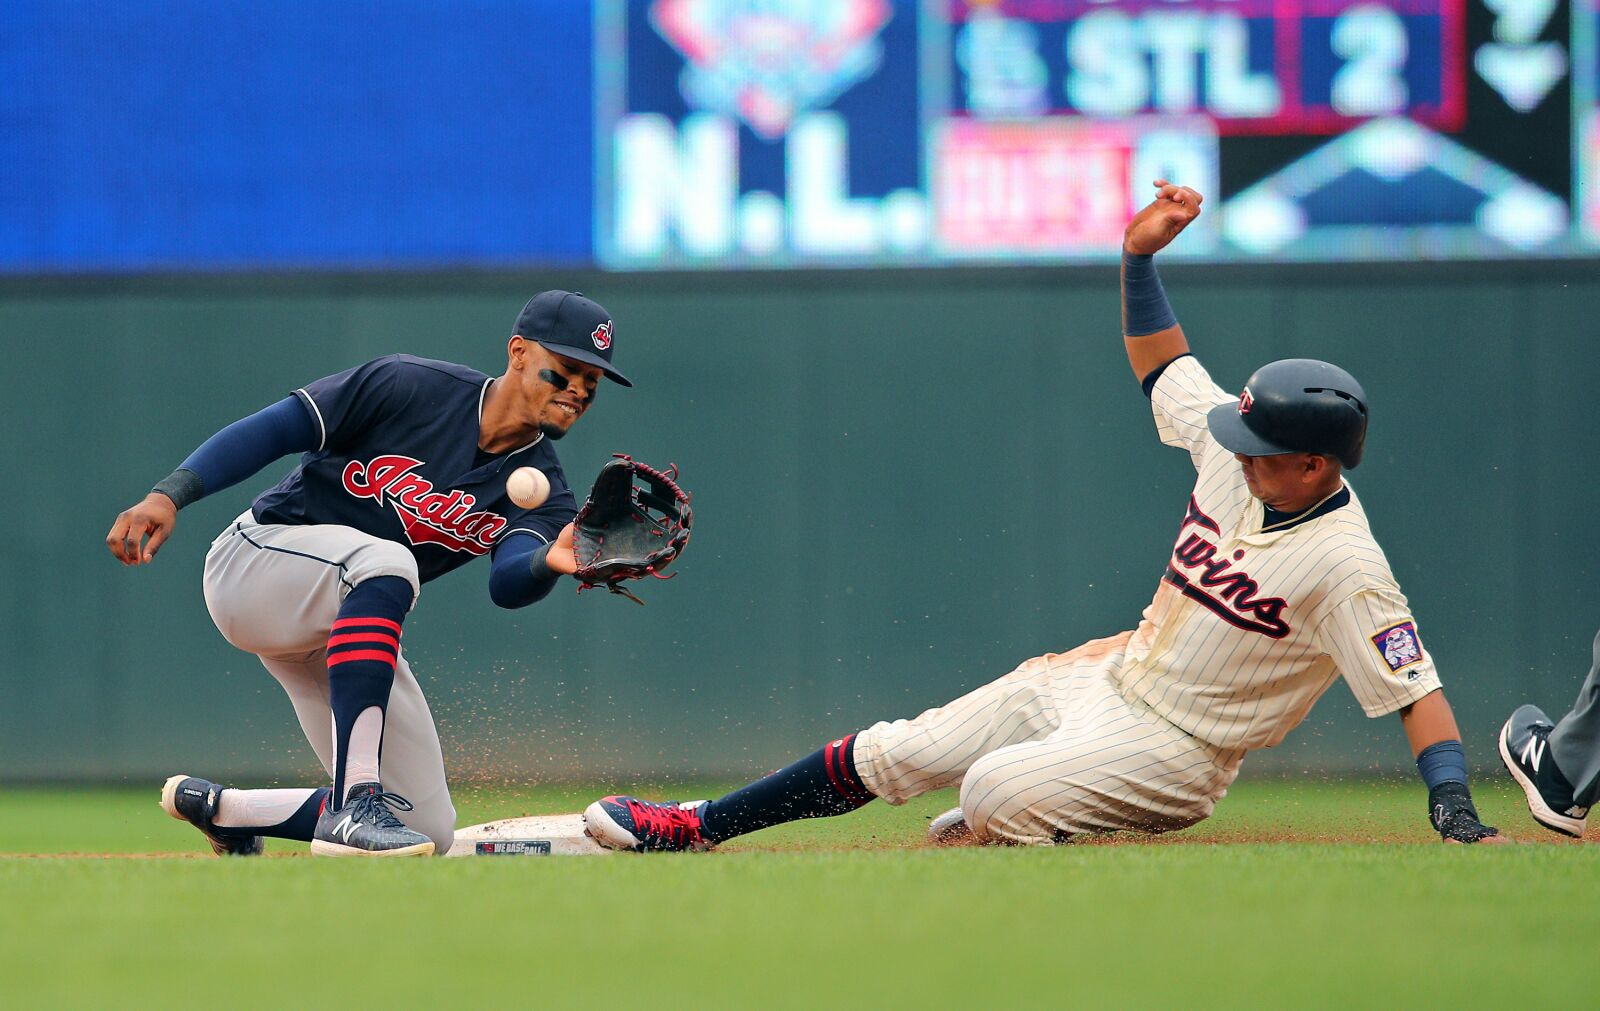 Cleveland Indians: Previewing the weekend home series vs. Minnesota